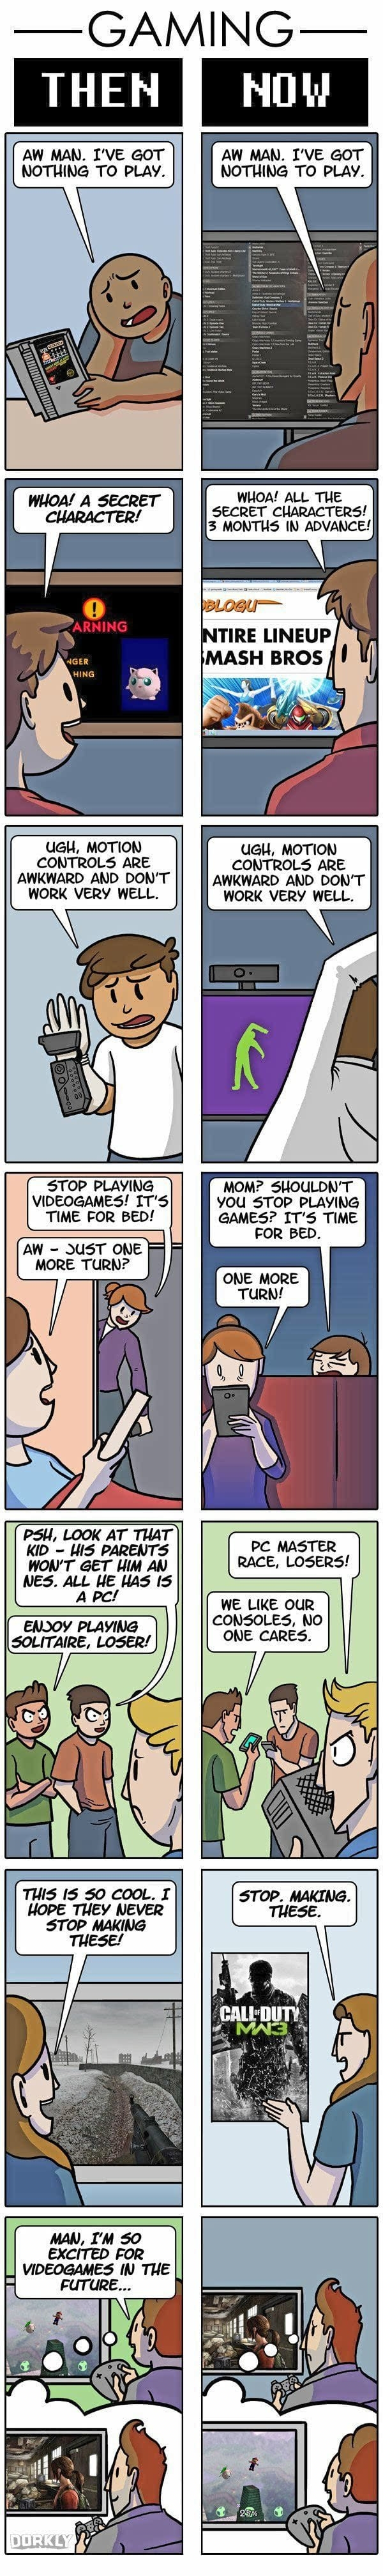 Gaming then & now